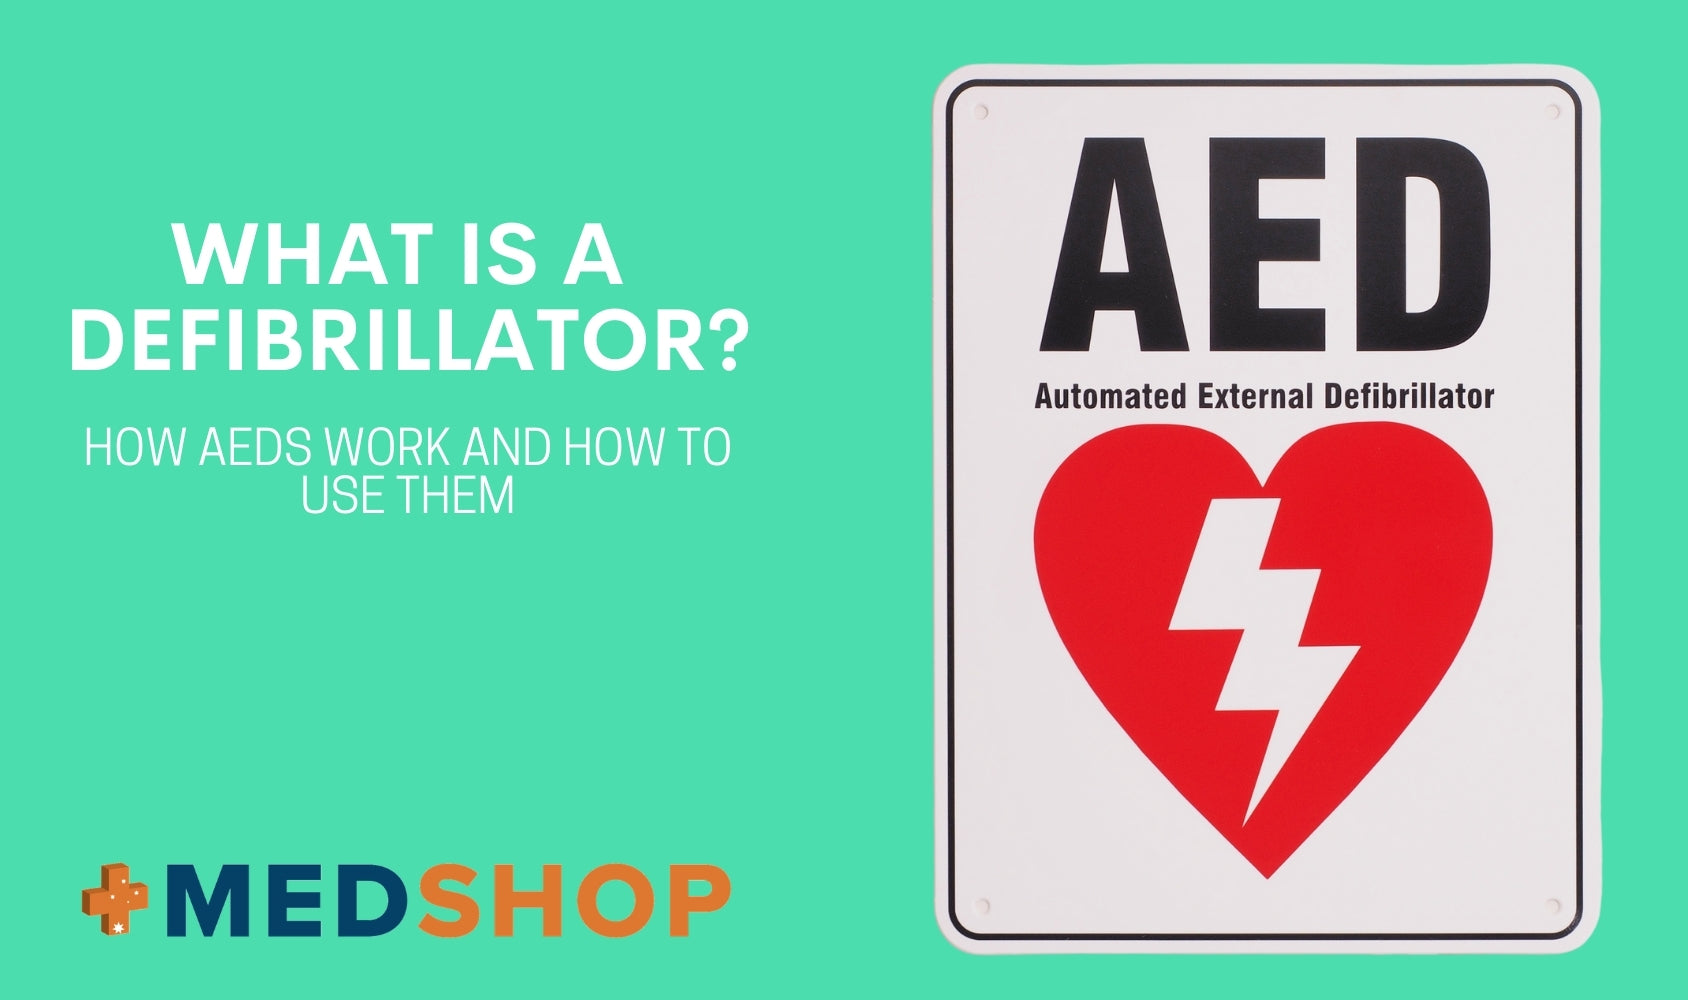 What is a Defibrilator?